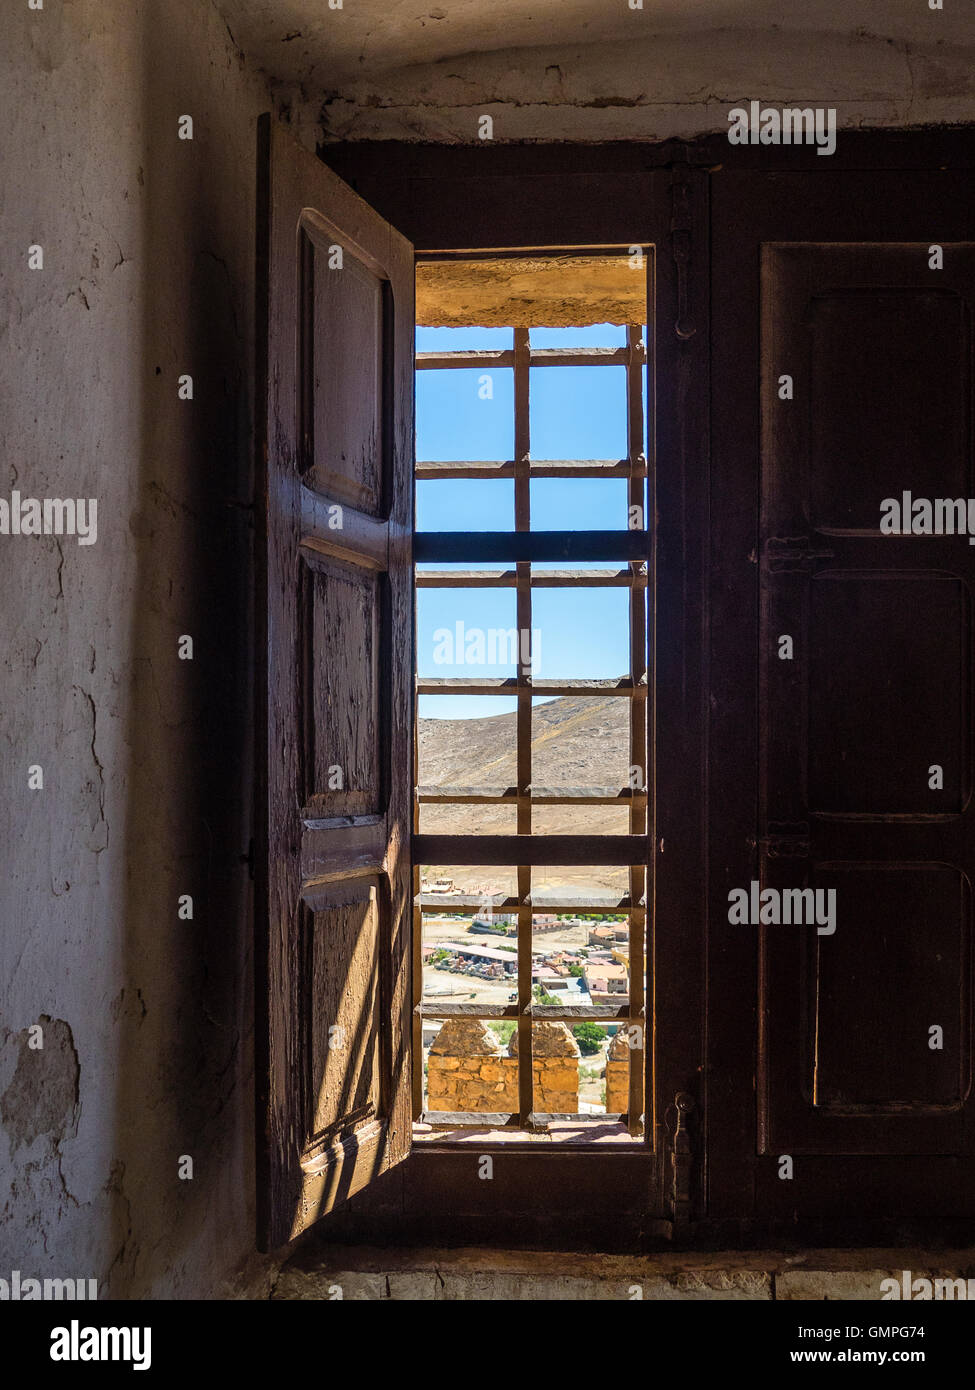 Looking Out An Interior Window With Wooden Shutters And Iron